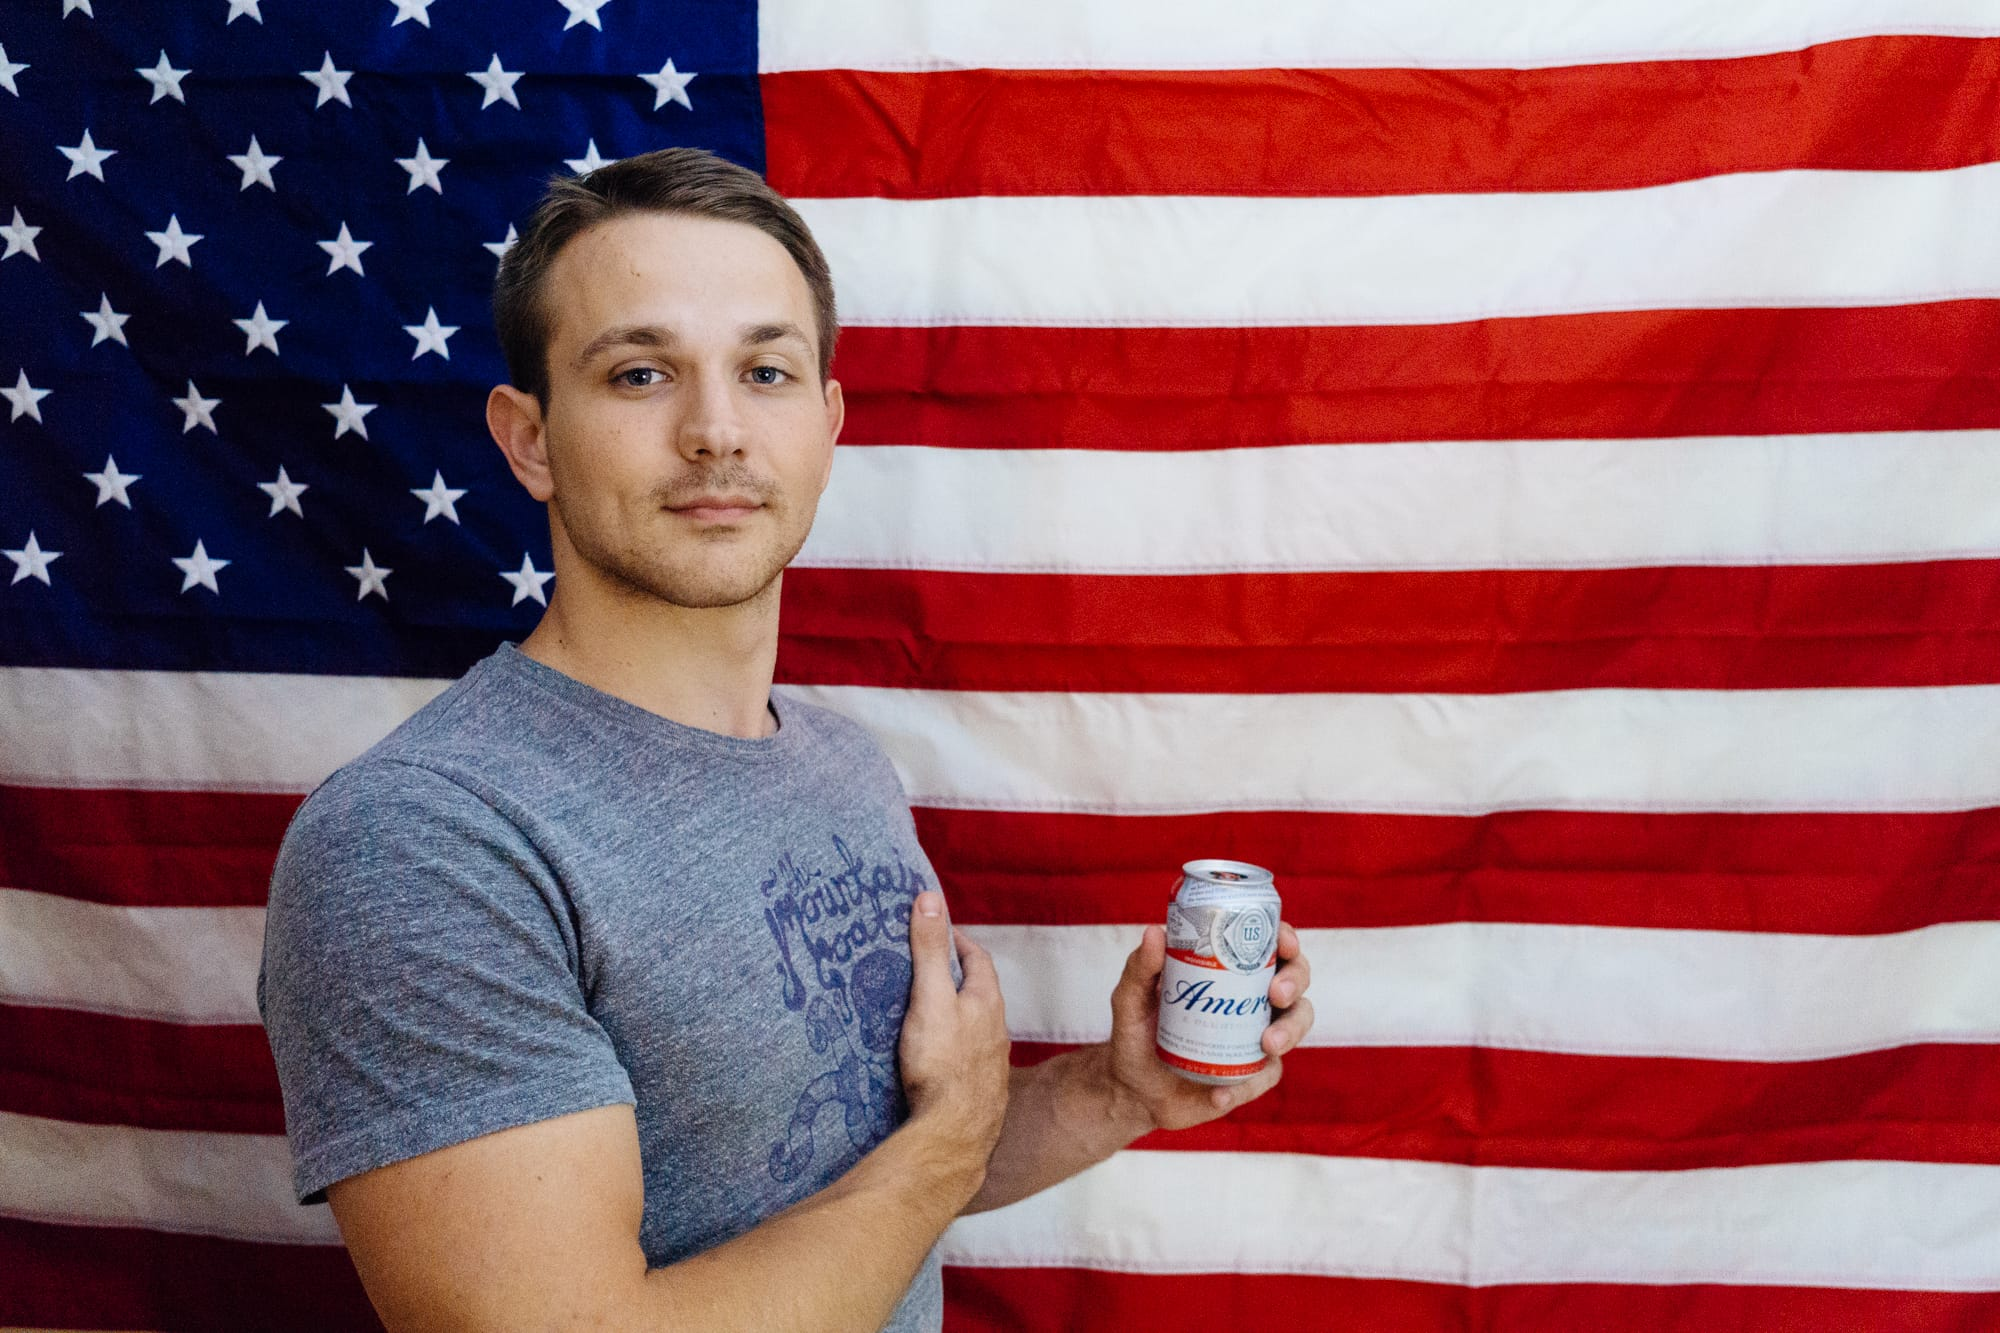 portrait of a man in front of an American flag